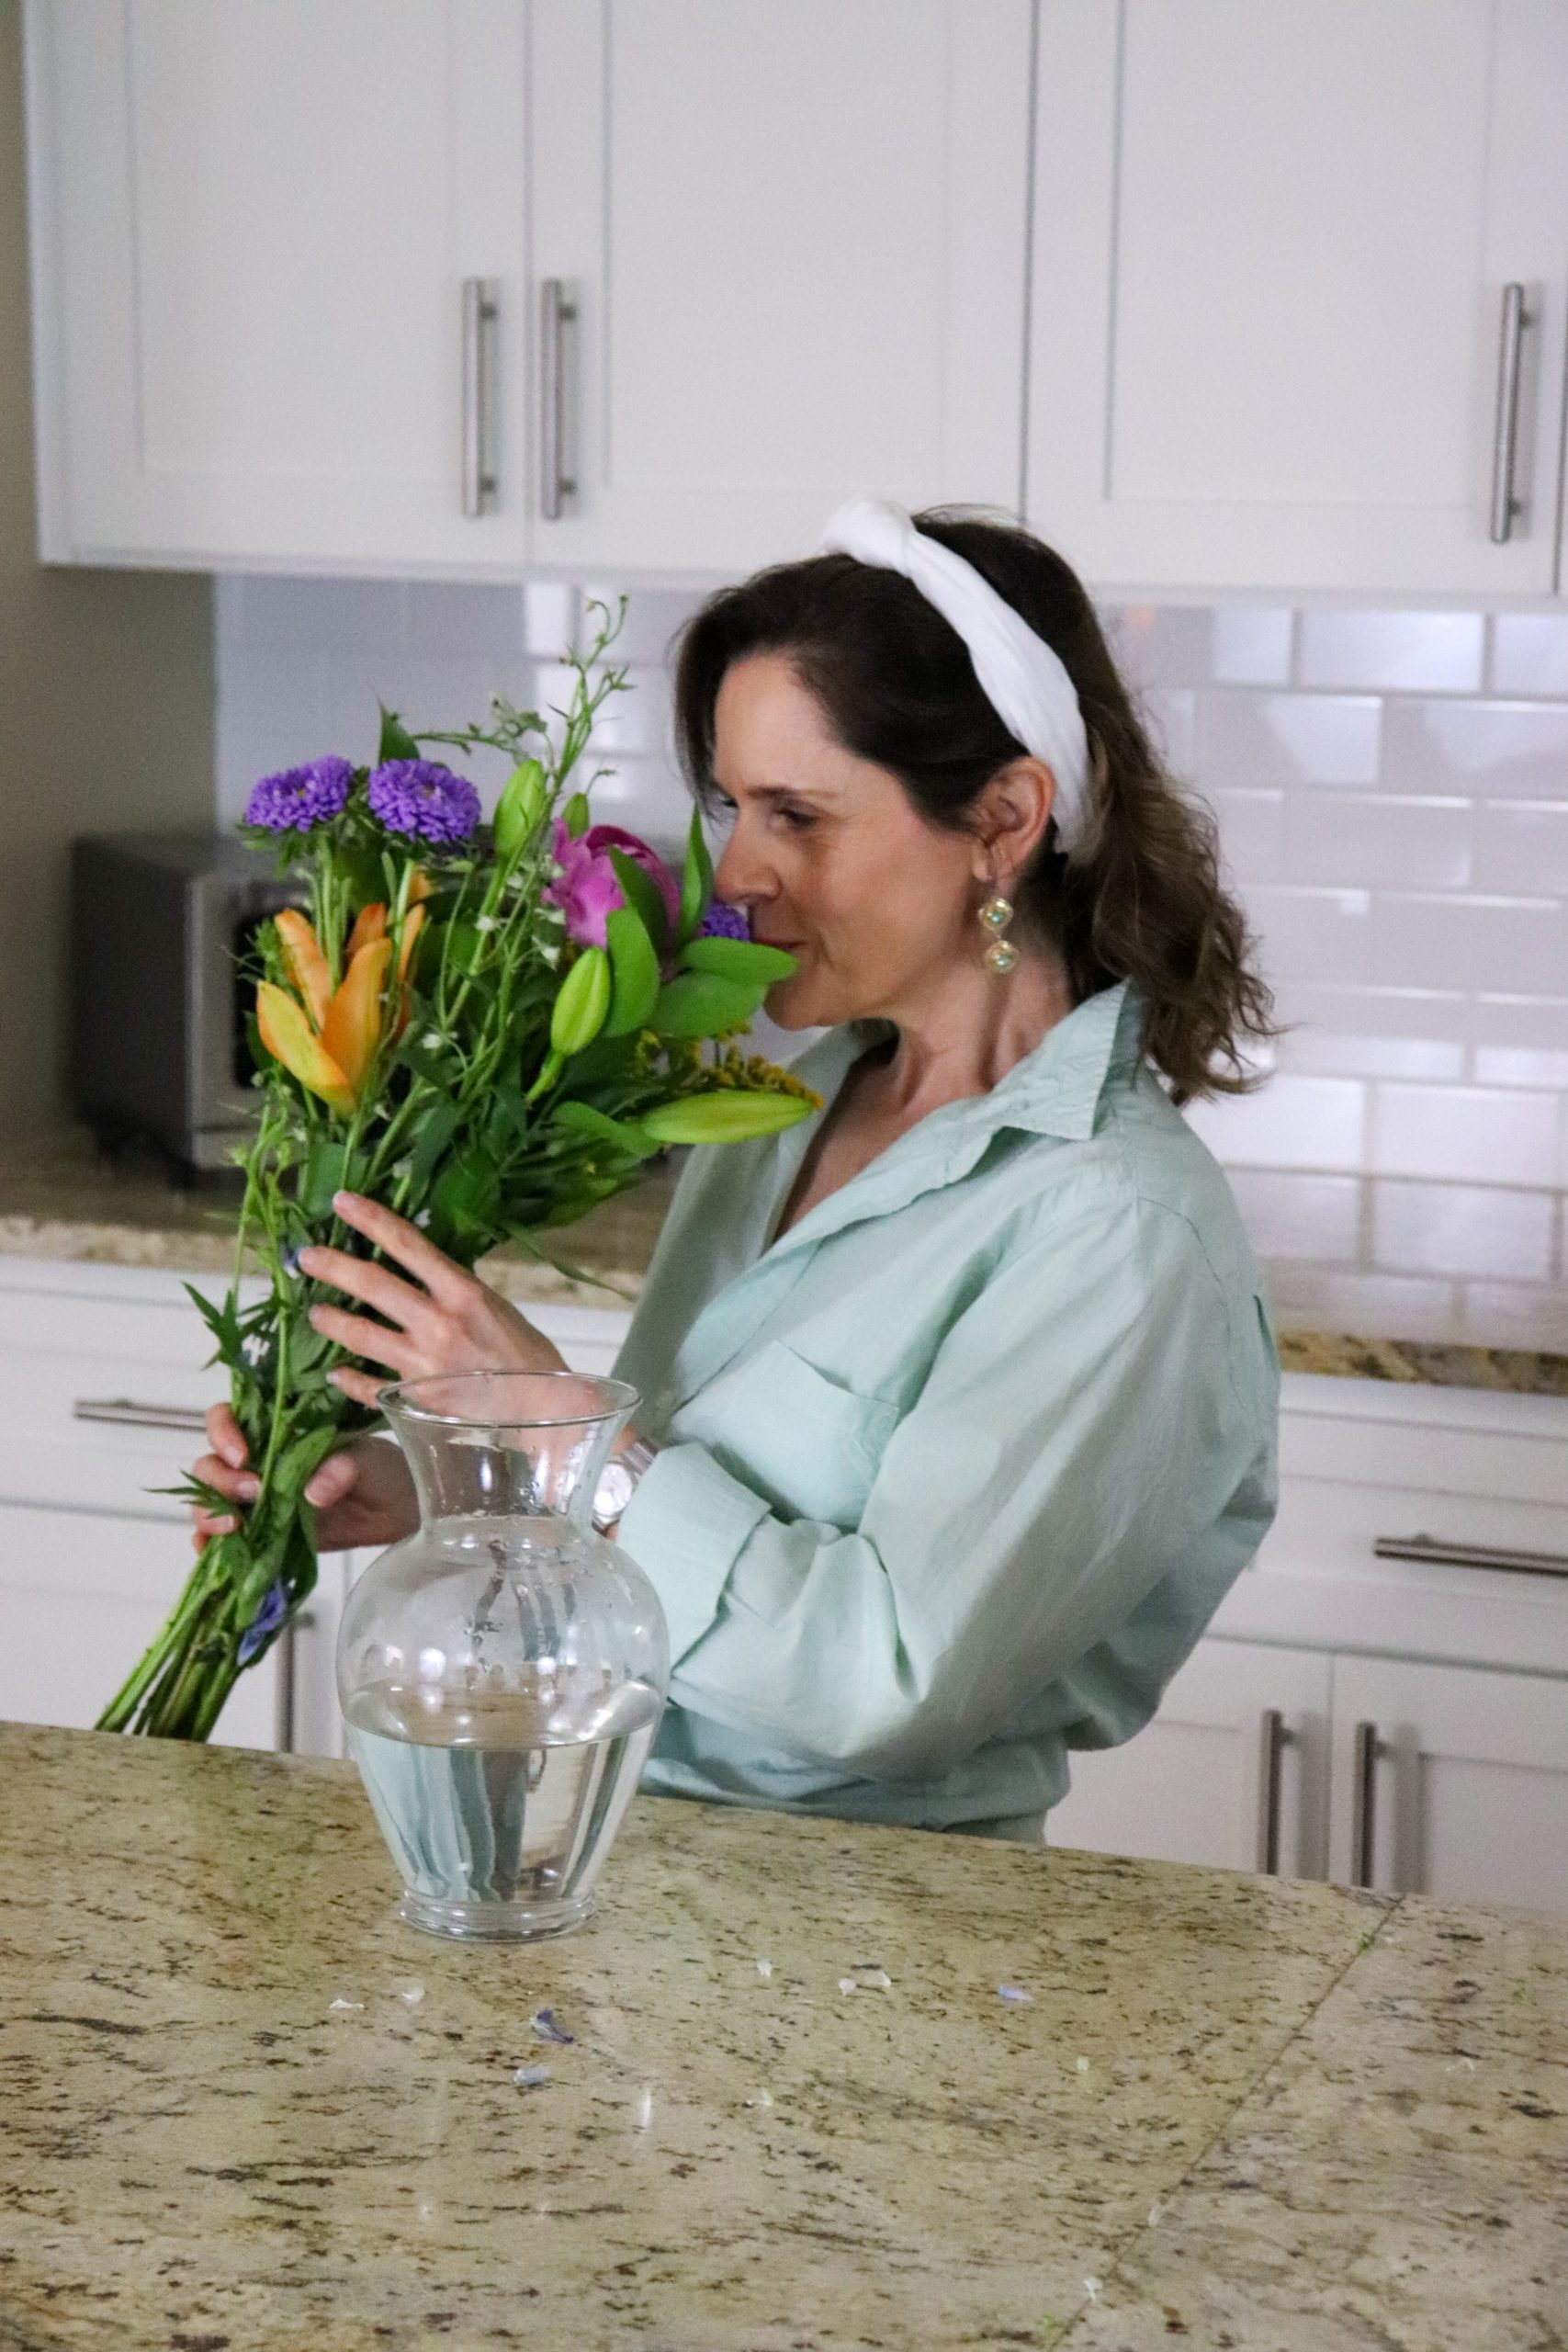 woman over 50 wearing a green shirt sniffing a boquet of May flowers